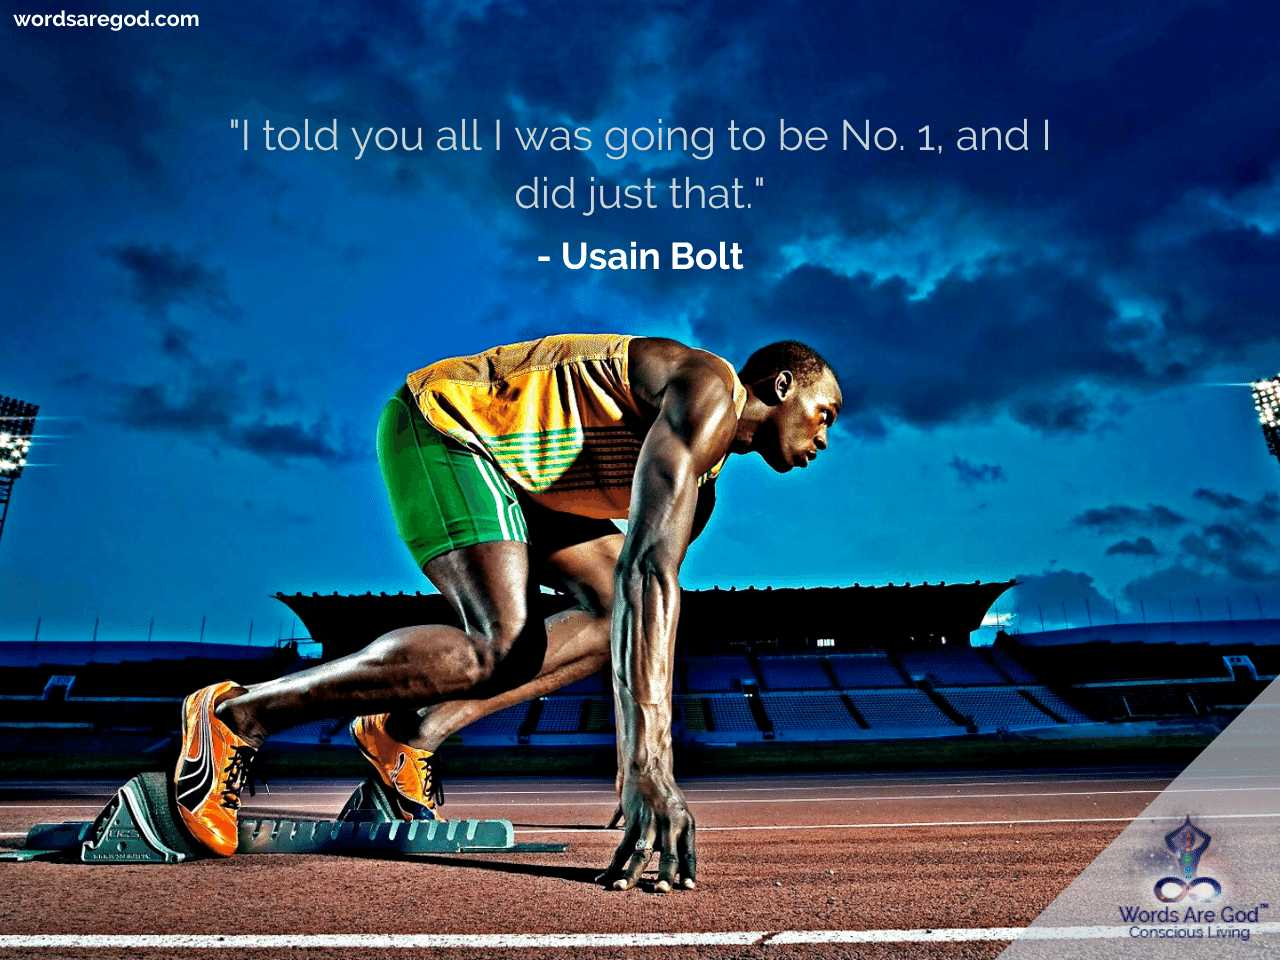 Usain Bolt Quotes Inspiring Life Quotes Inspirational Quotes For Work Amazing Love Quotes Life Hacking Motivational Quotes